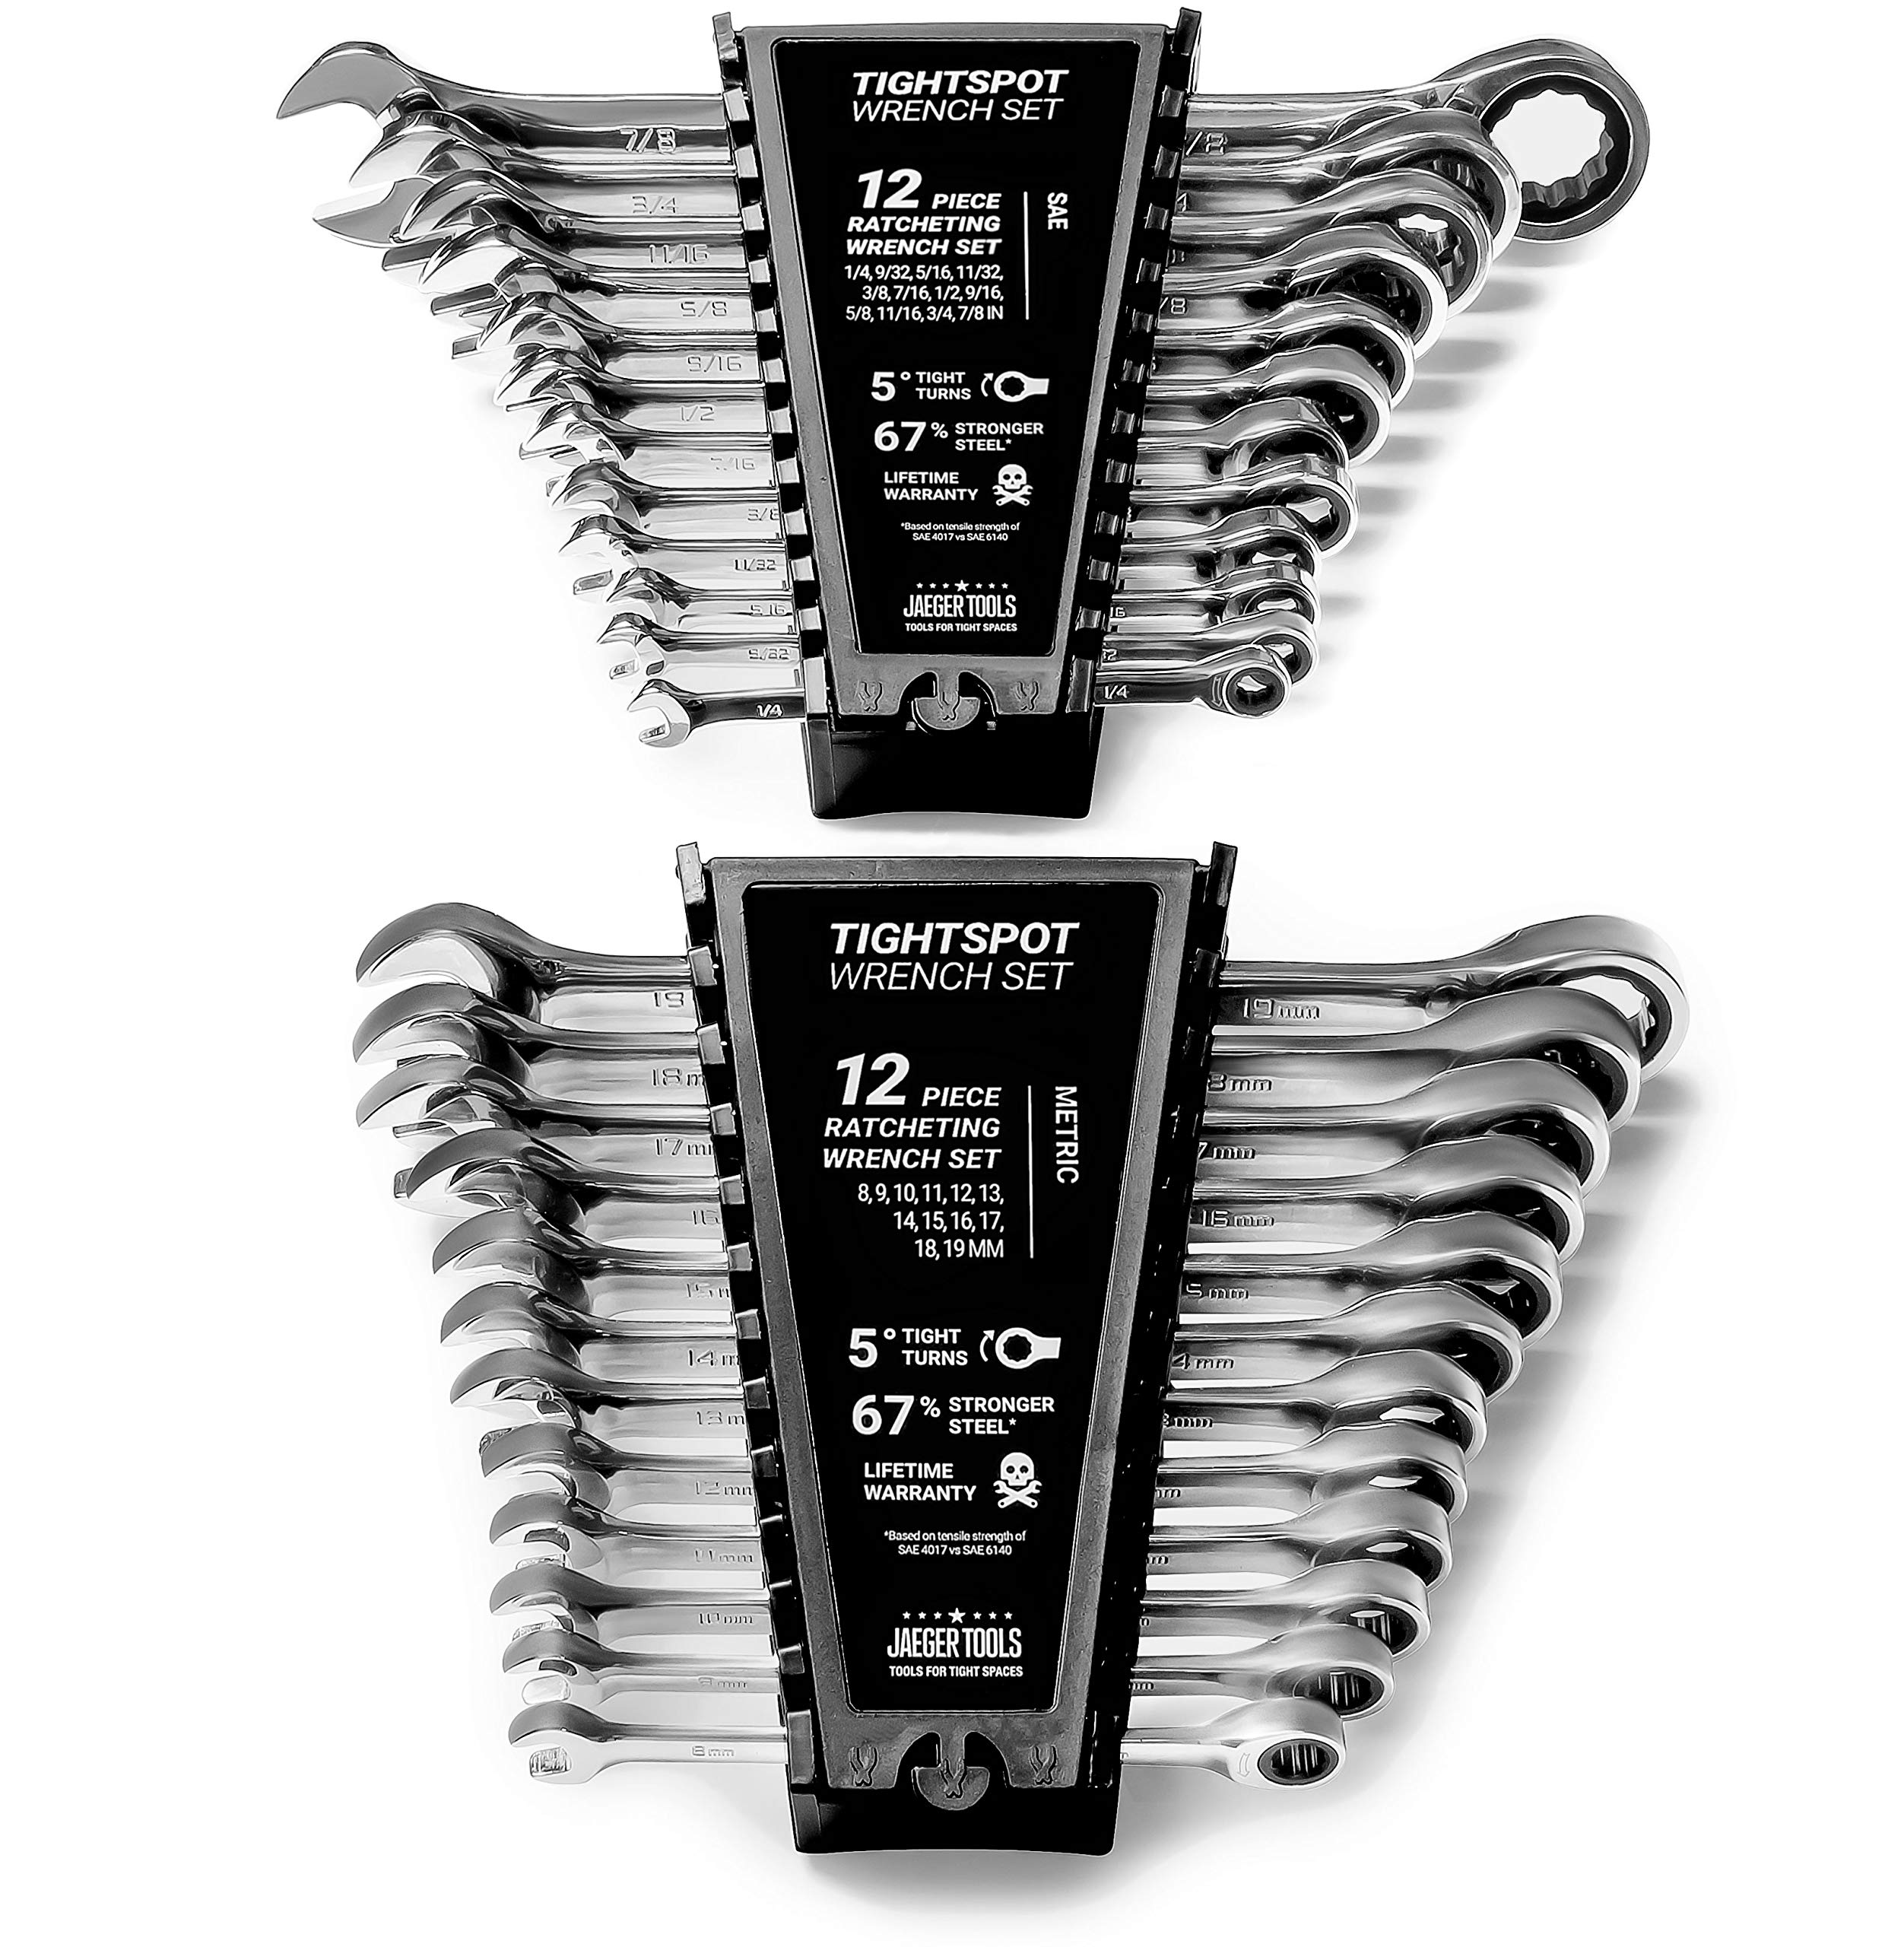 24pc IN/MM TIGHTSPOT Ratchet Wrench MASTER SET - Inch & Metric With Quick Access Wrench Organizer - Our standard in combination wrench sets from gear to tip by Jaeger